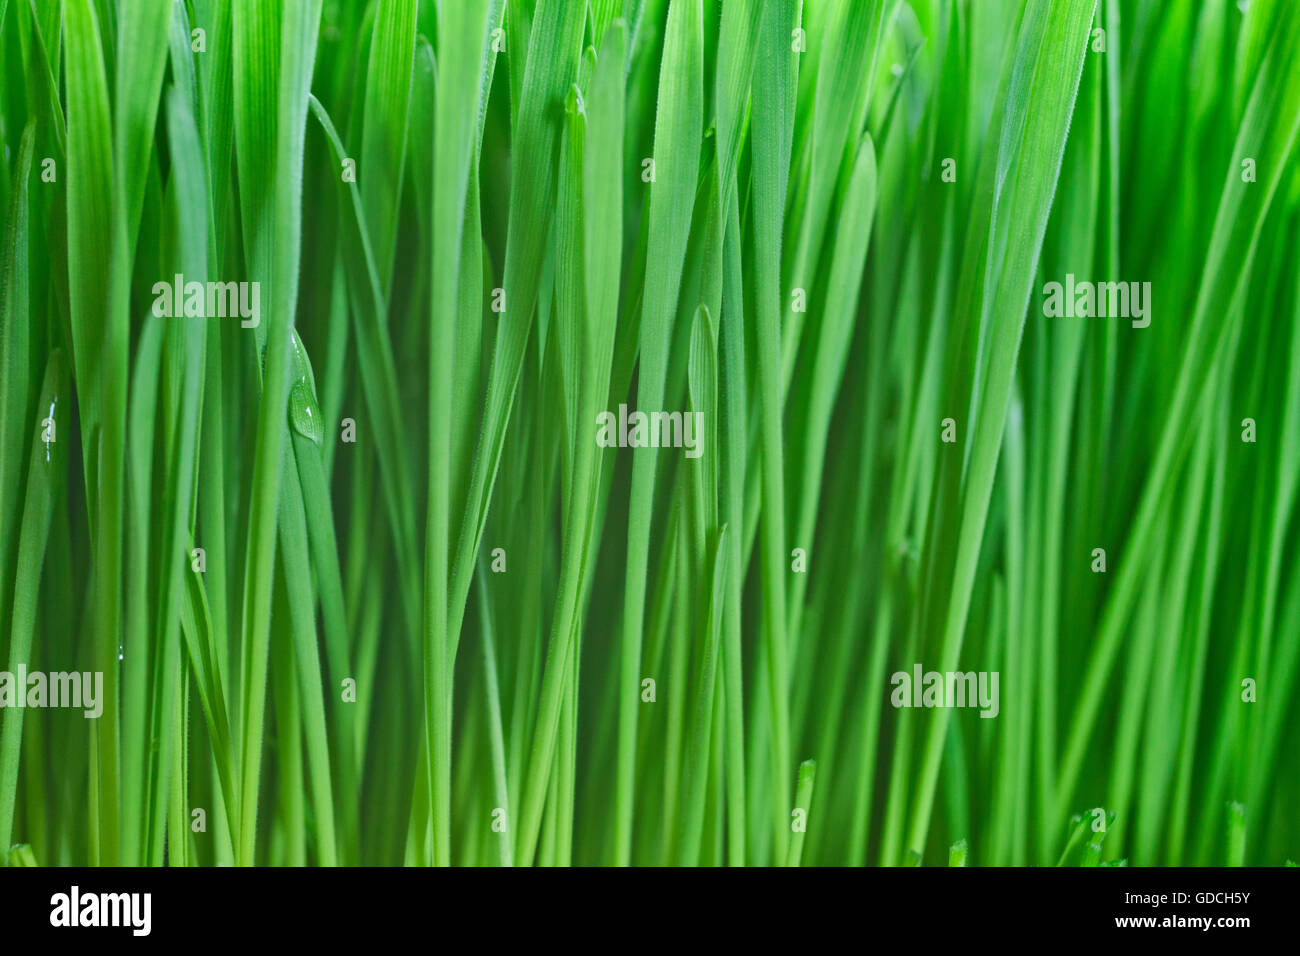 Lush, fresh green wheatgrass background with moisture drops - Stock Image